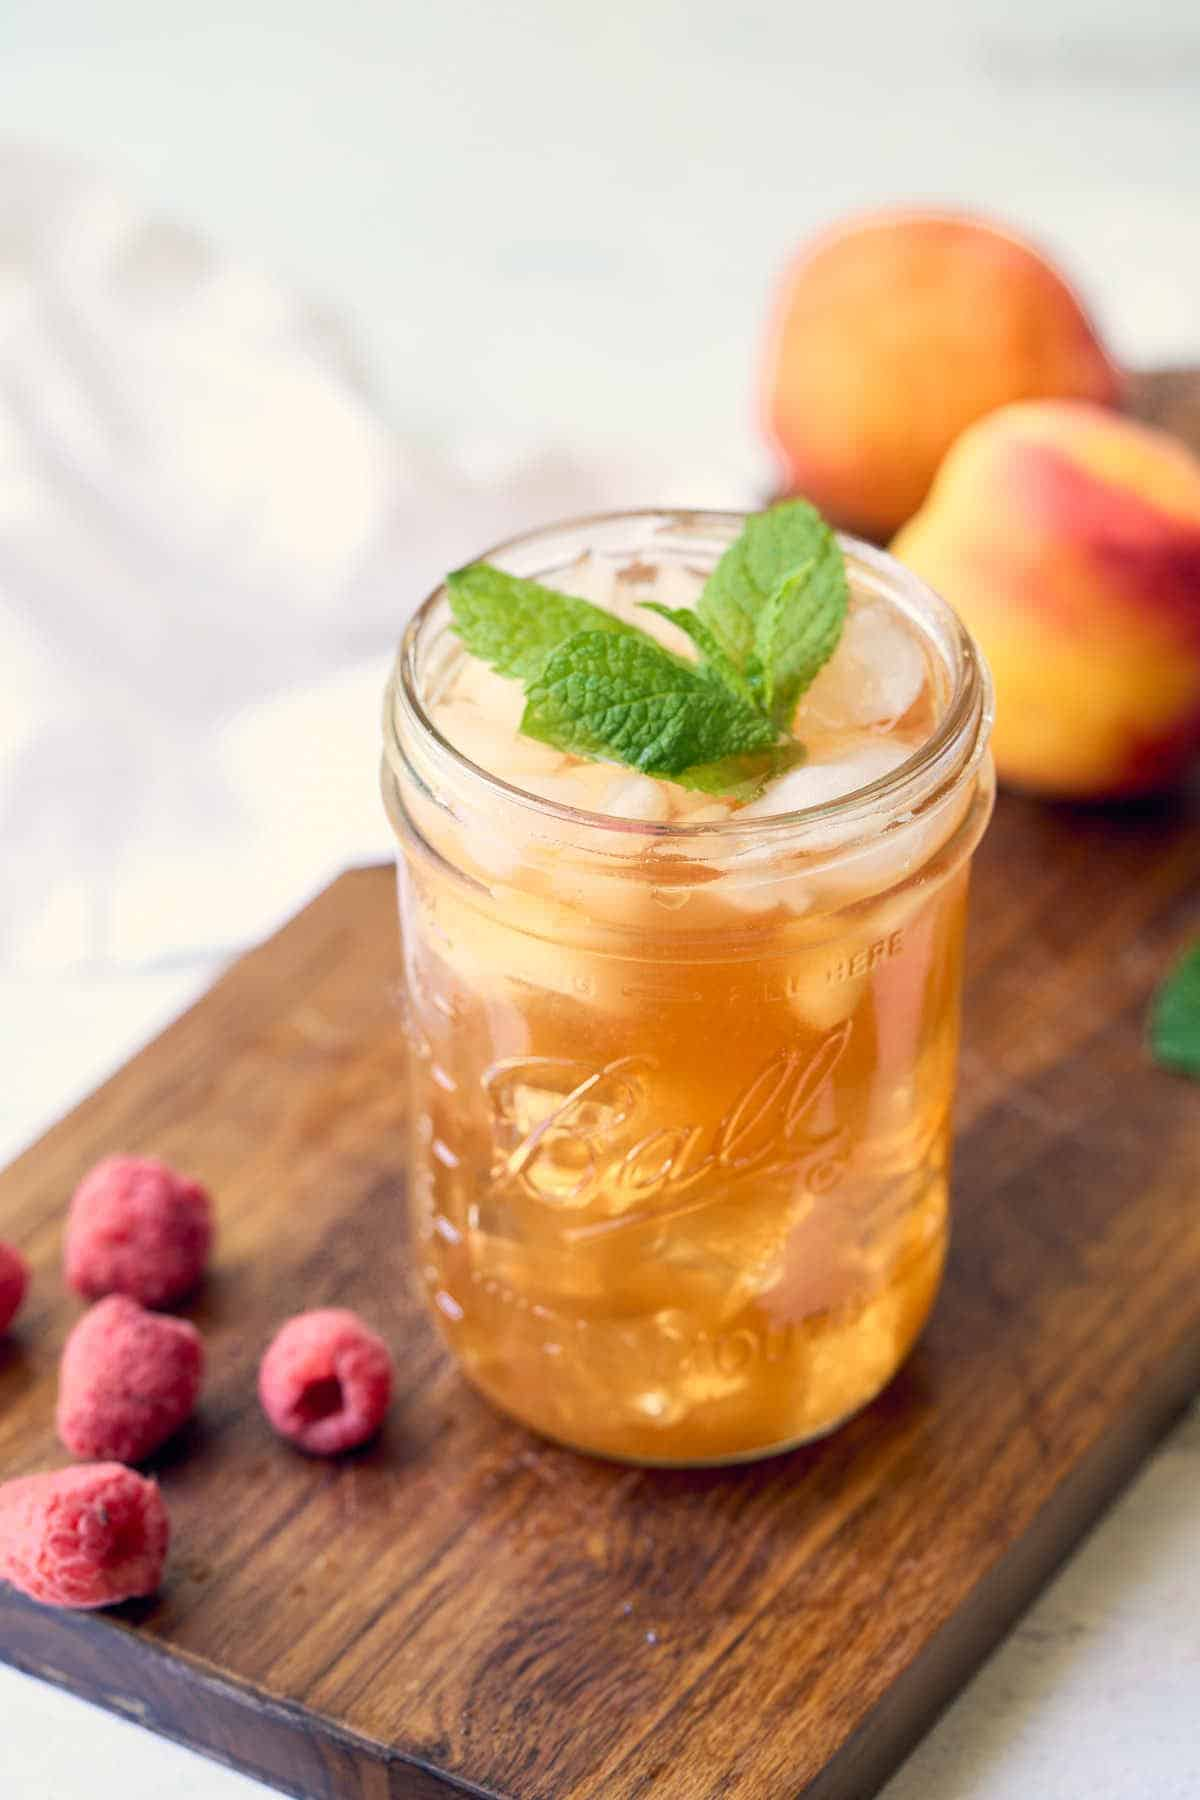 pint size mason jar with iced tea: fresh peaches and raspberries in background